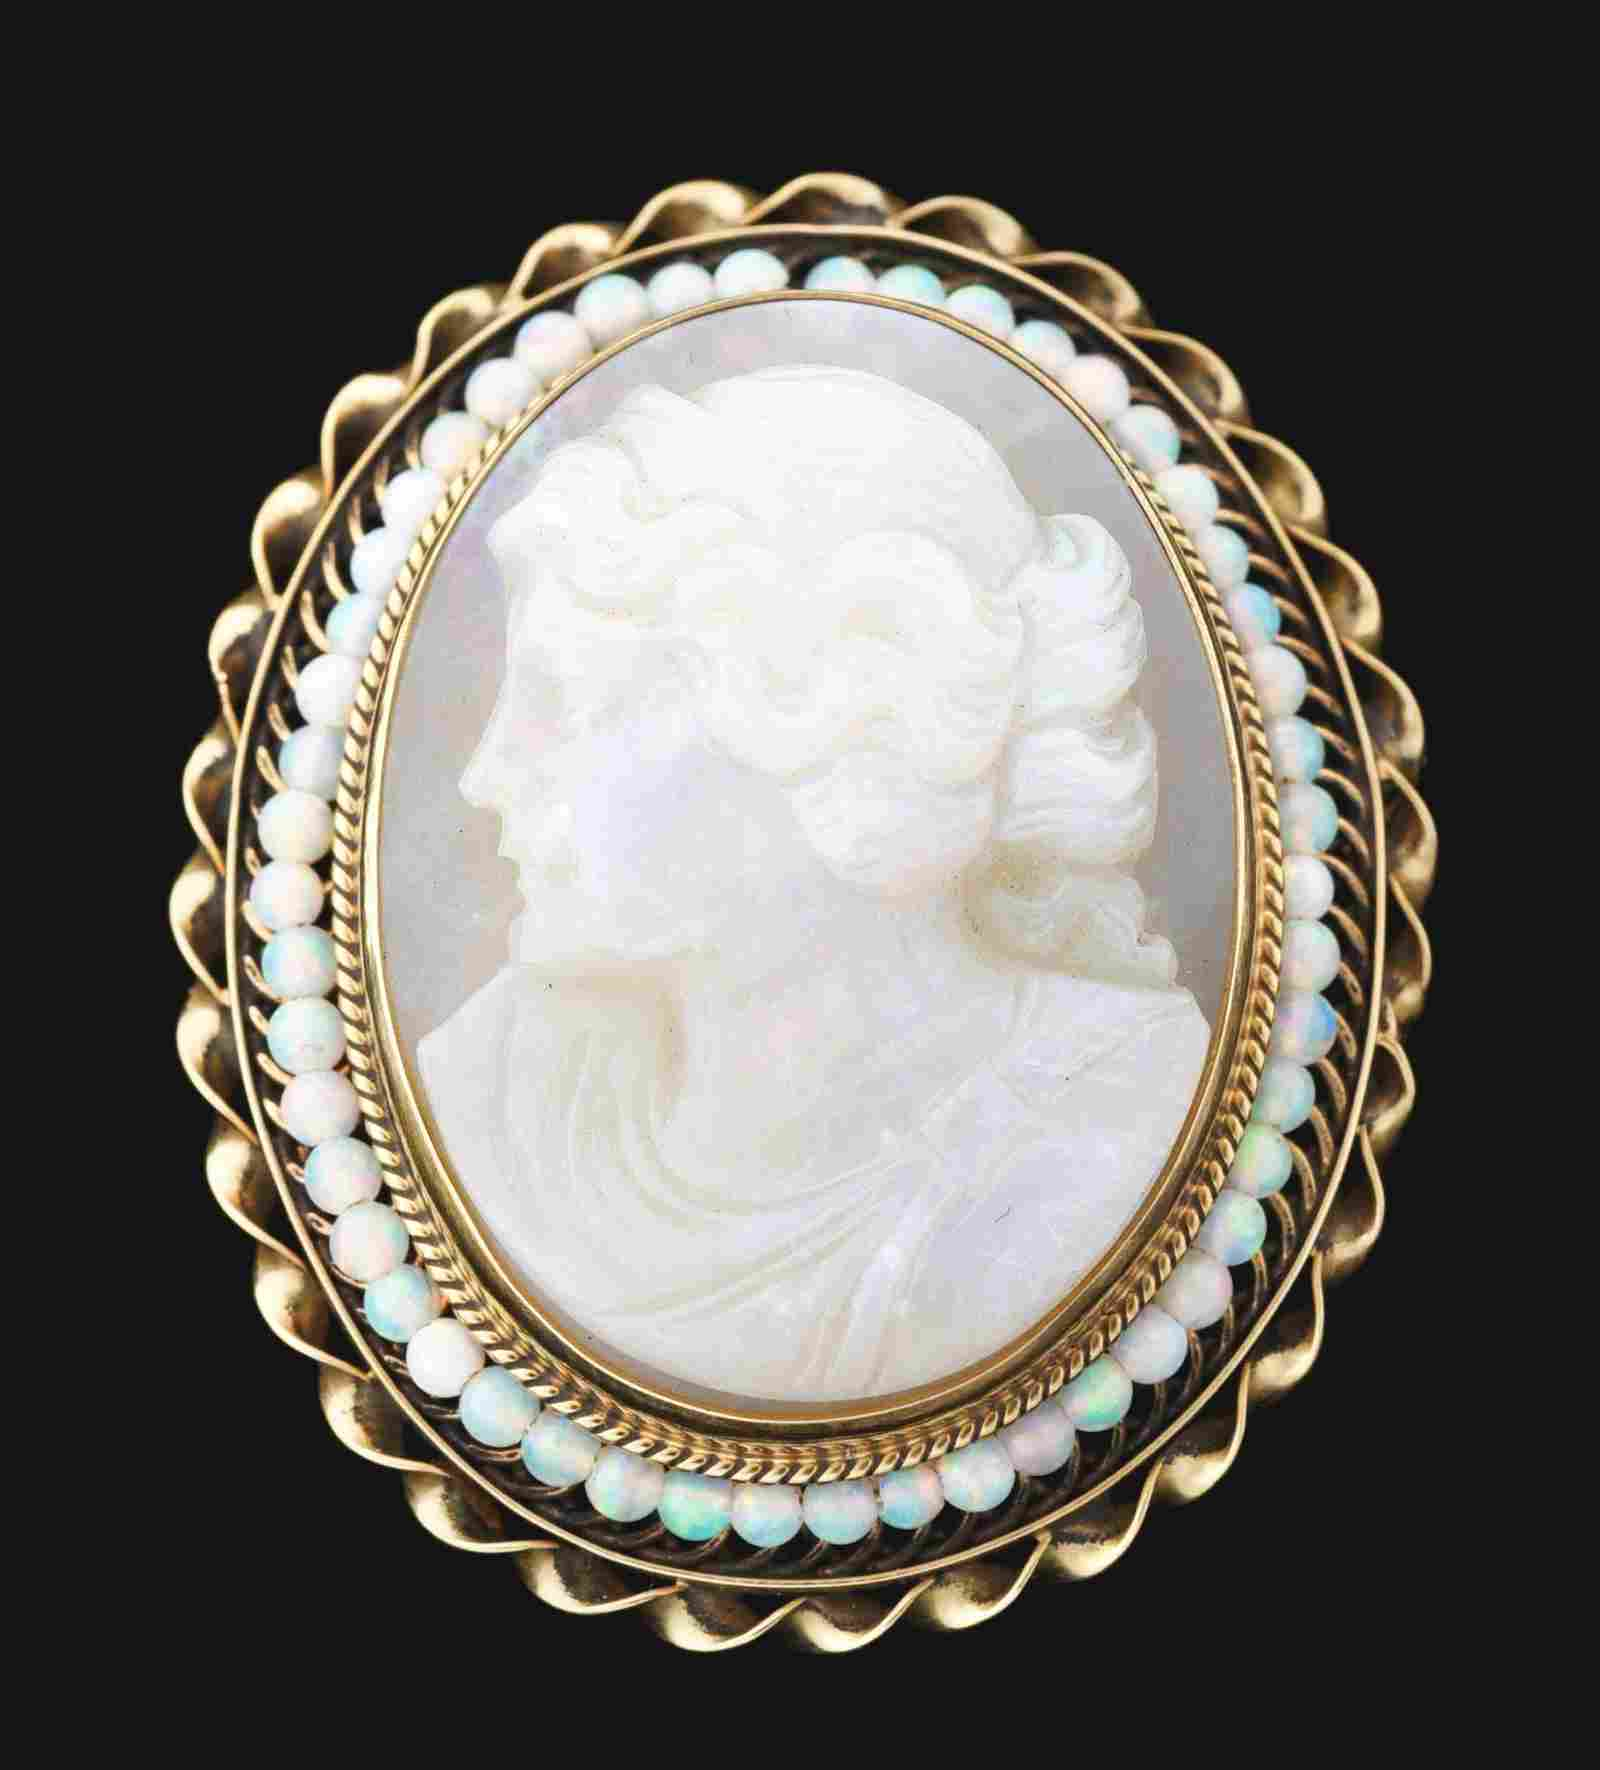 ANTIQUE 14K GOLD CARVED OPAL CAMEO BROOCH/PENDANT.